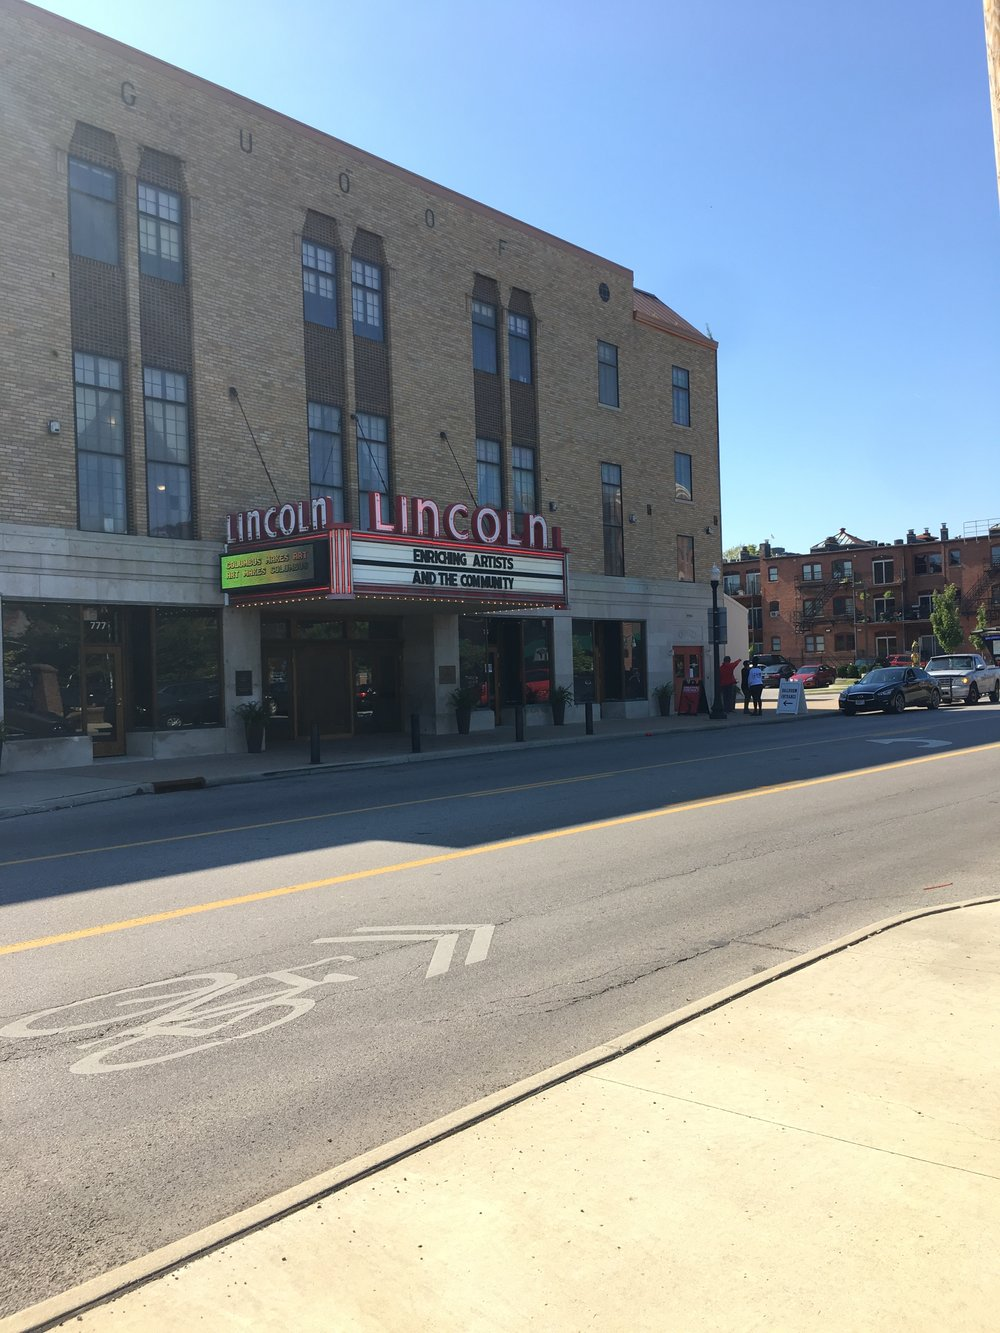 Lincoln Theatre - Enriching Artists and The Community